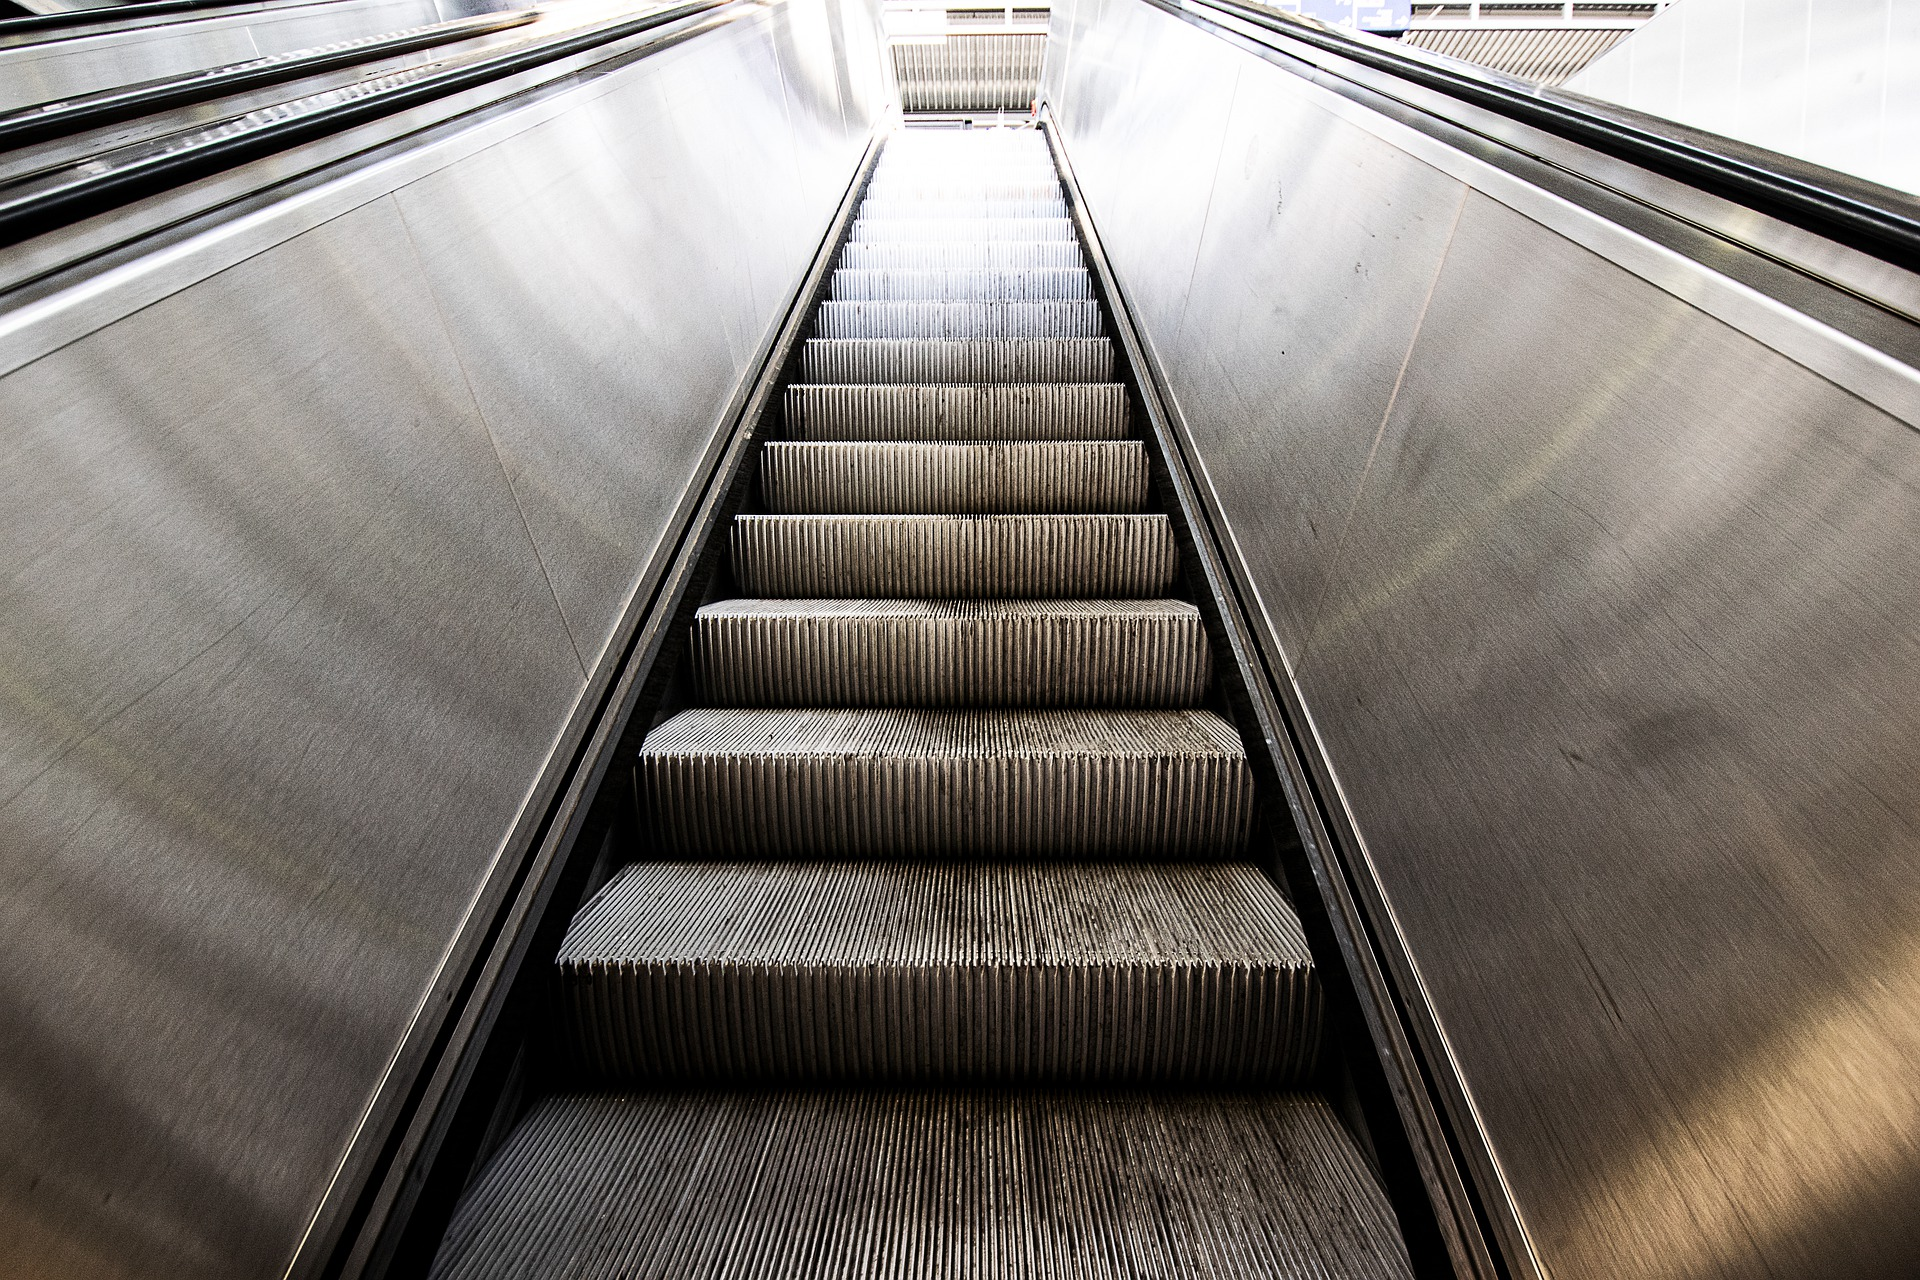 Fun Fact: Which County Is Really 'Going Places' With the Longest Escalator in the Country?